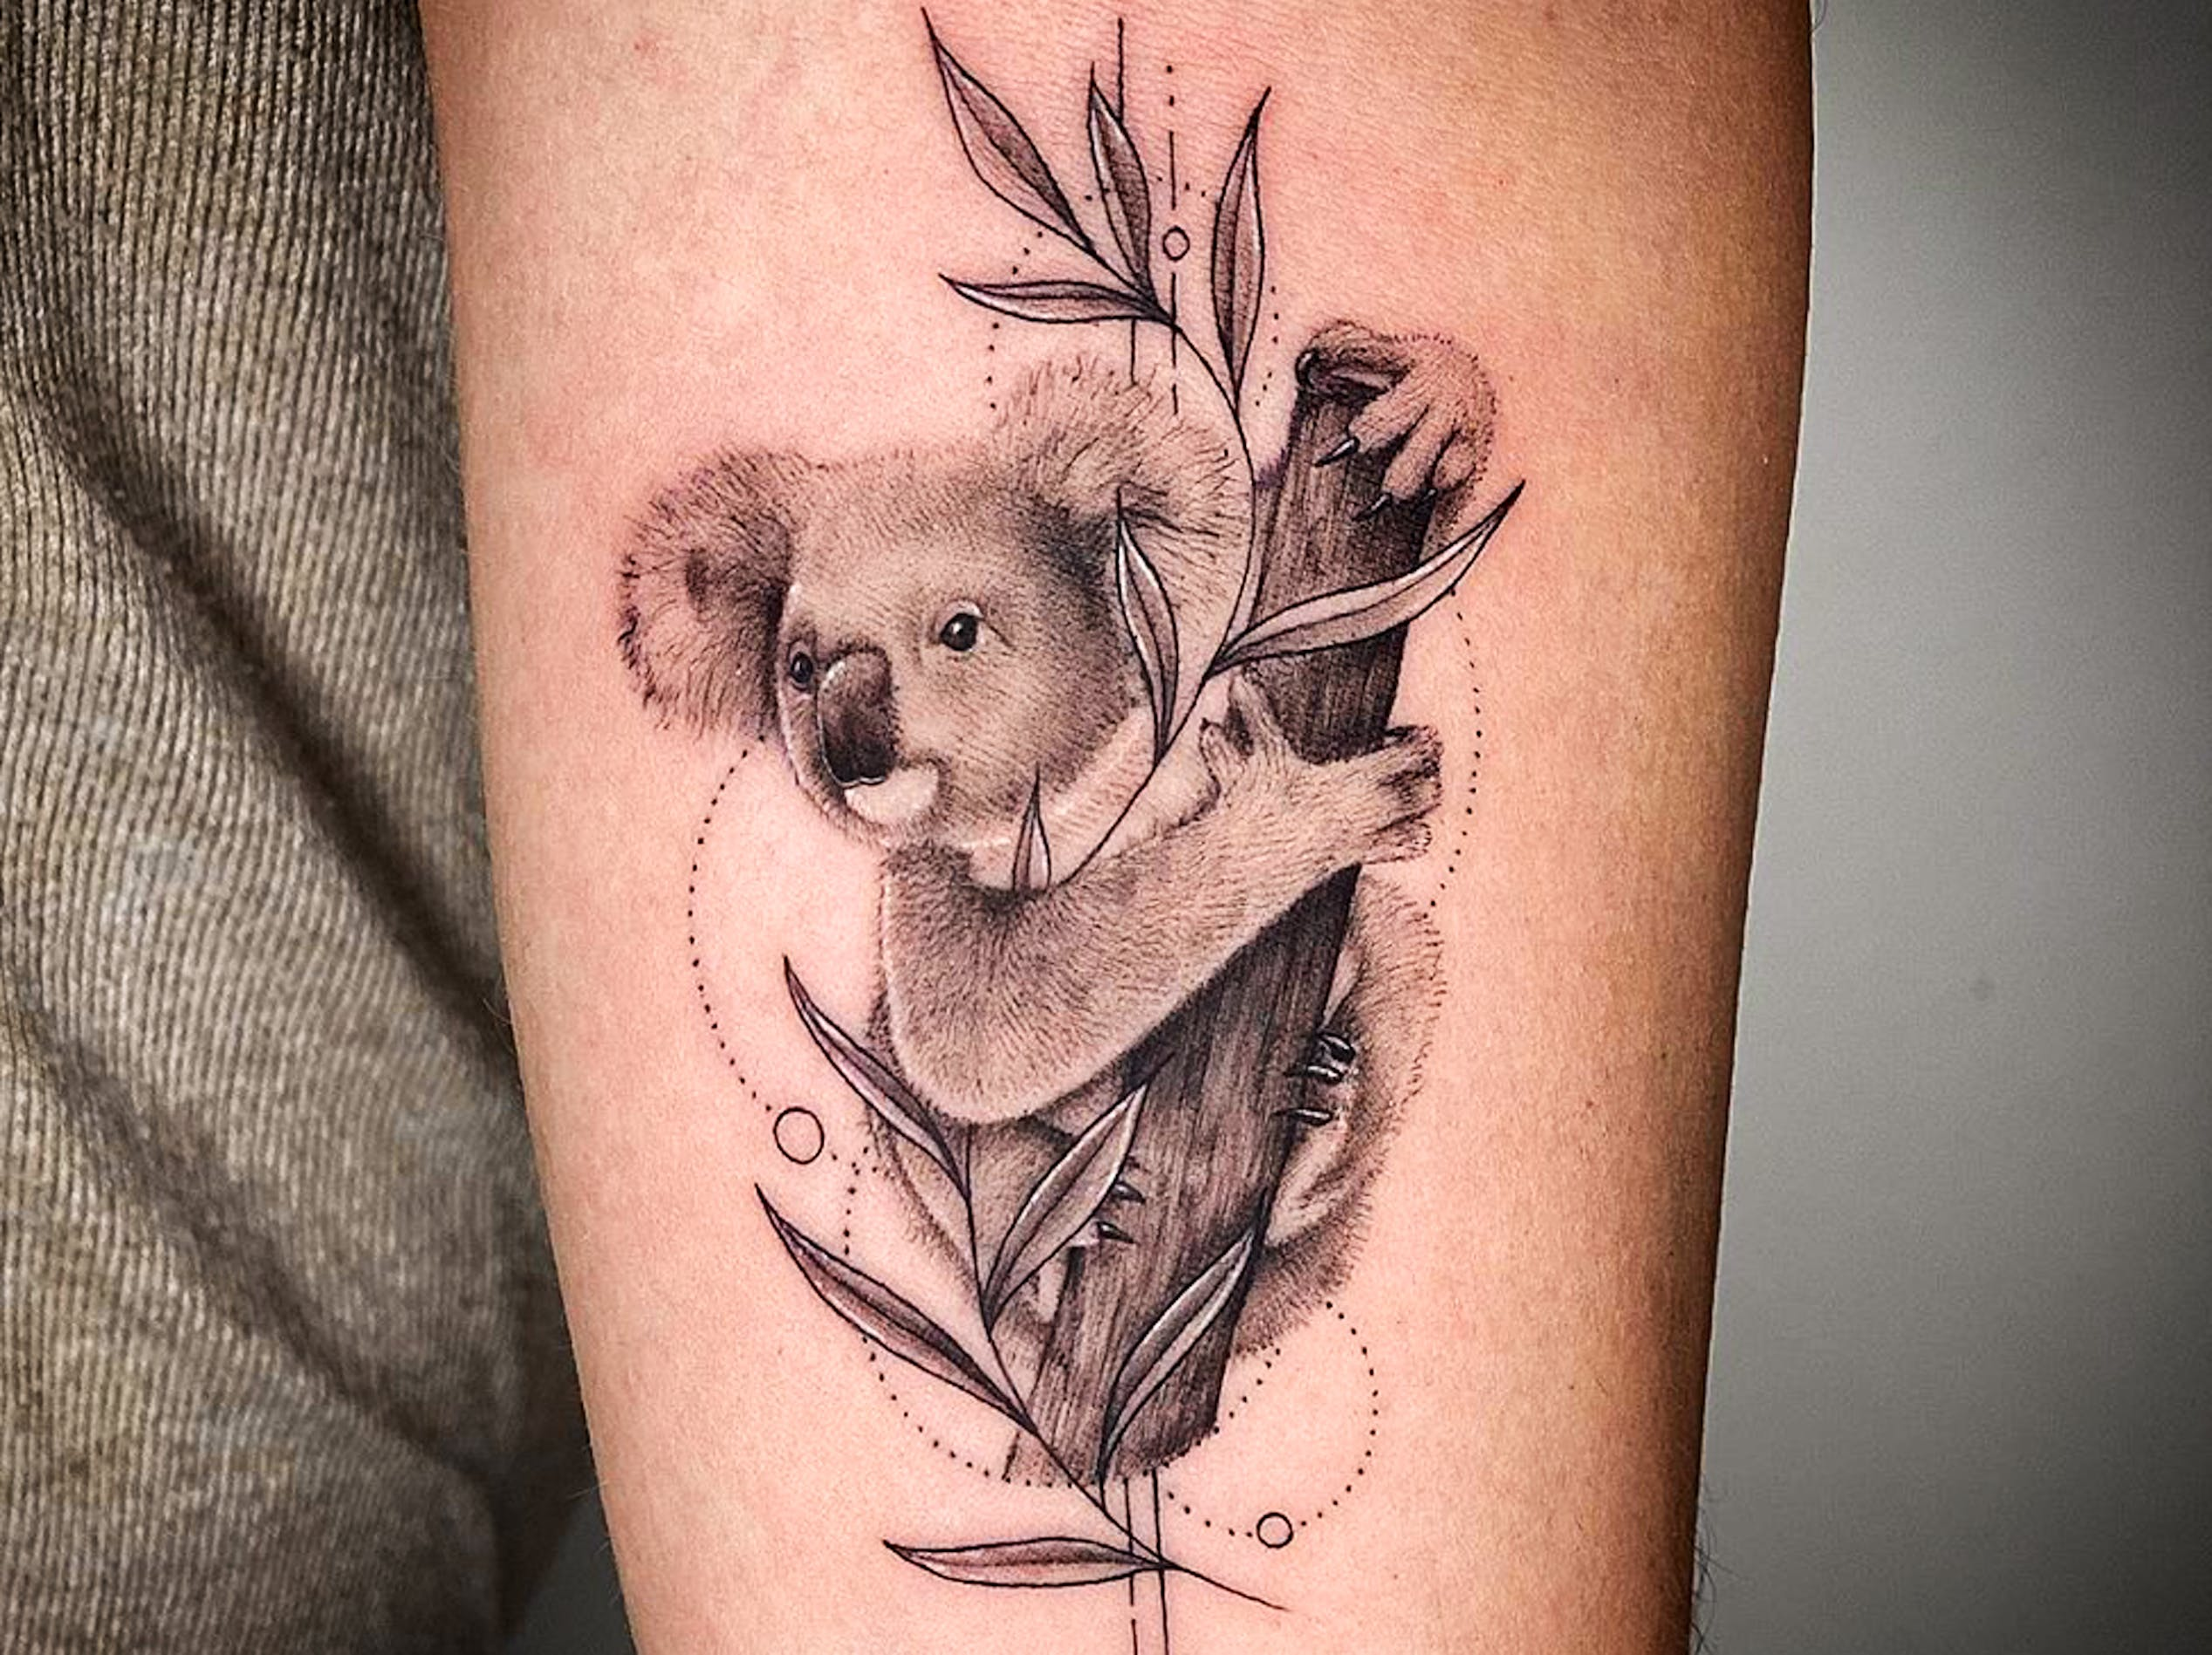 A surprising amount of realism is possible with black and gray inks. This tattoo by Kelsey van Leeuwen at New Amsterdam Tattoo Studio creates an exeptional level of detail with delicate dotwork and geometric accents.